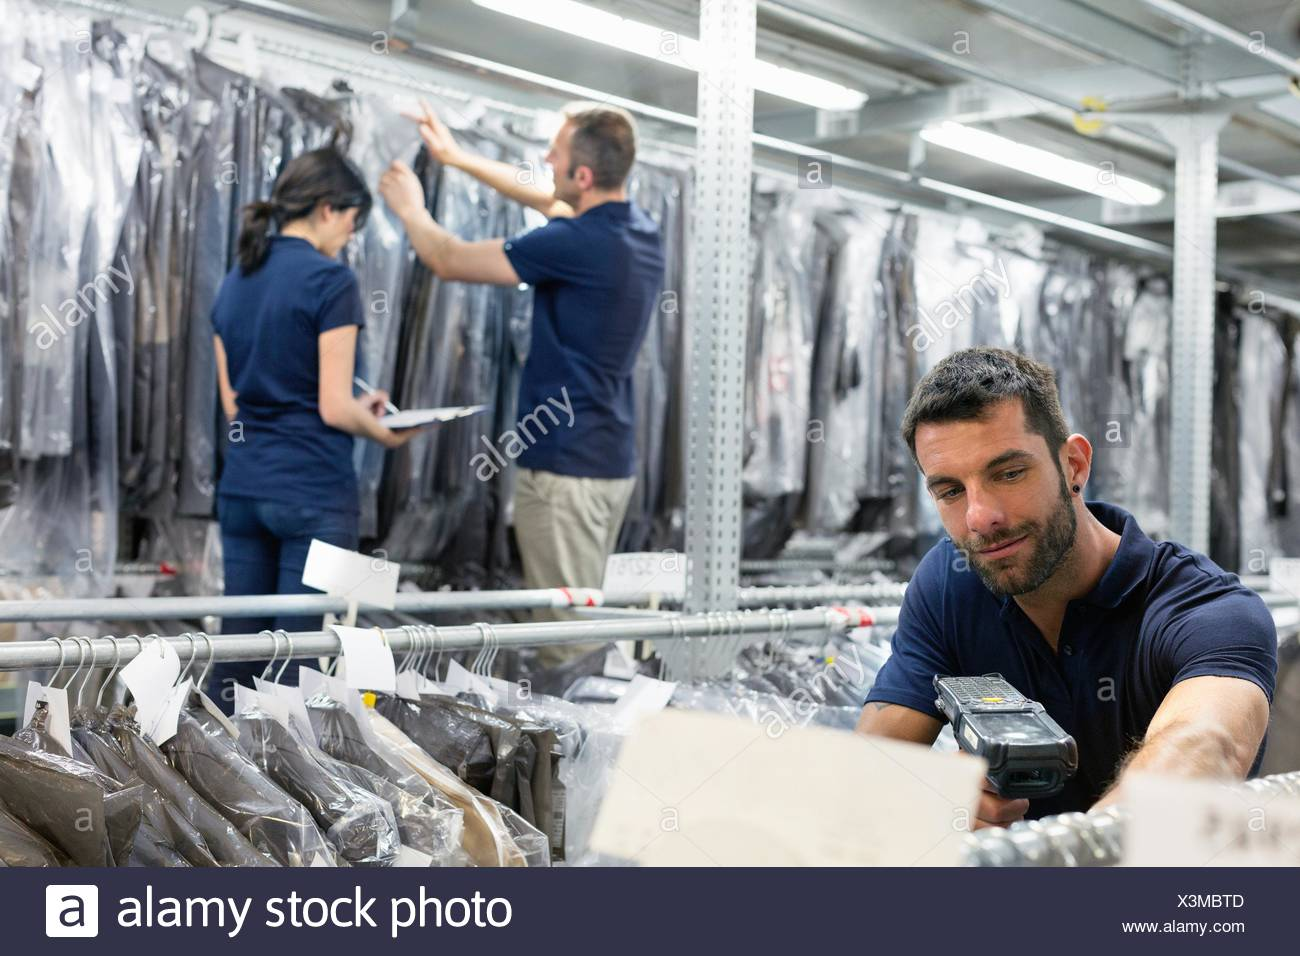 Three warehouse workers preparing garments in distribution warehouse - Stock Image